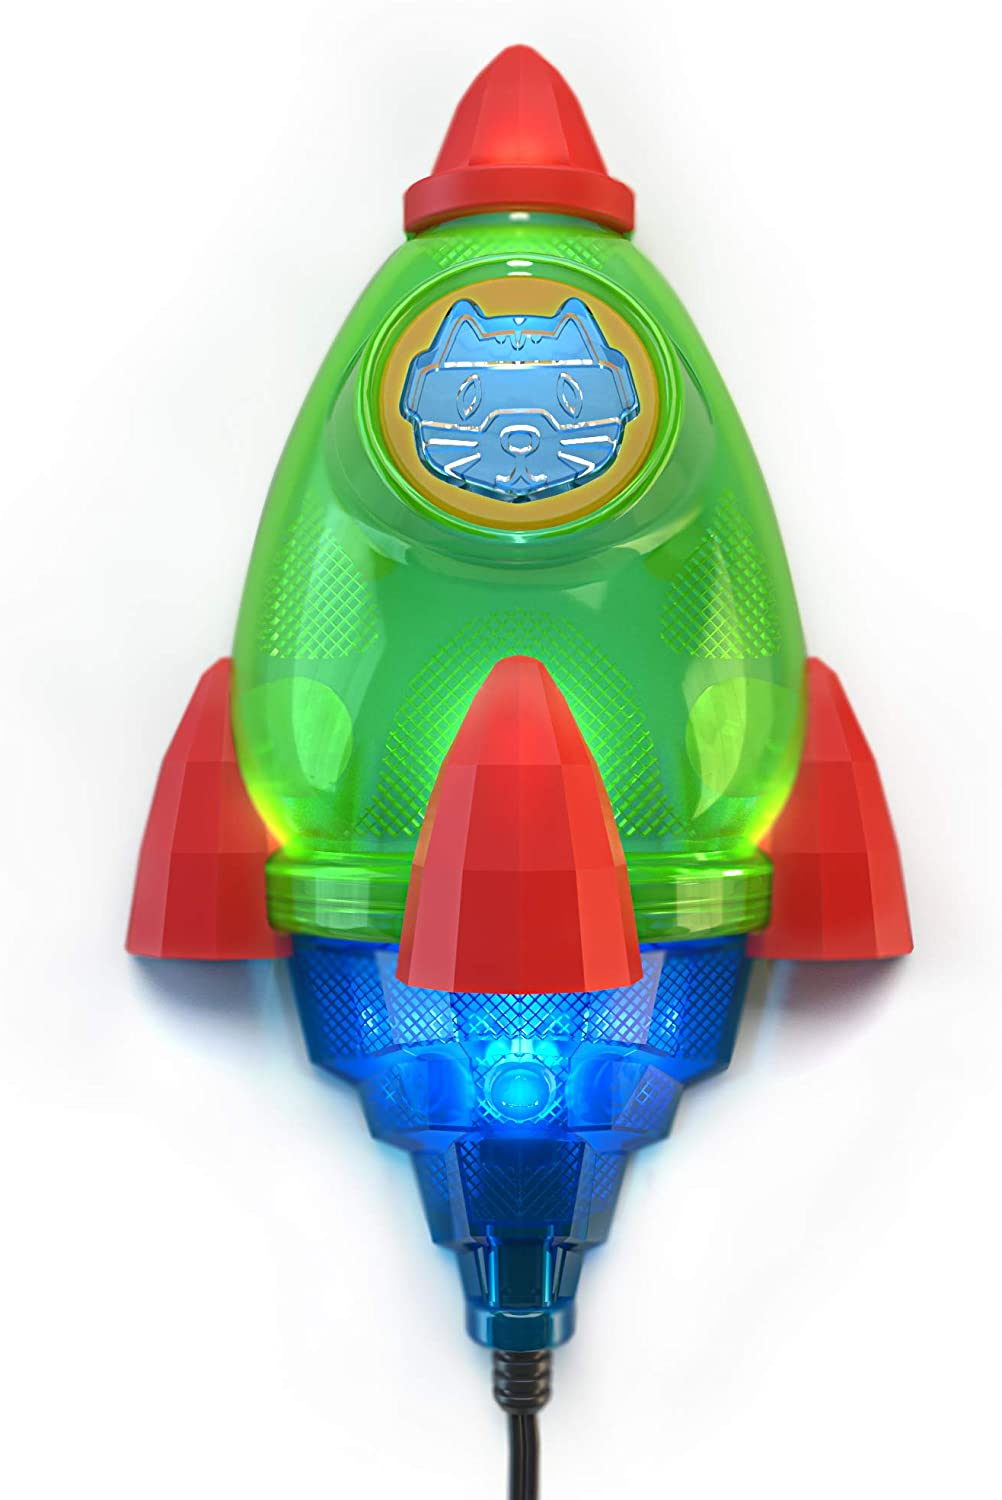 Rocket lamp for kids room, Touch control LED Rocket ship lamp for boys room - Space themed bedroom decor for boys and girls - Rocket night lights for kids